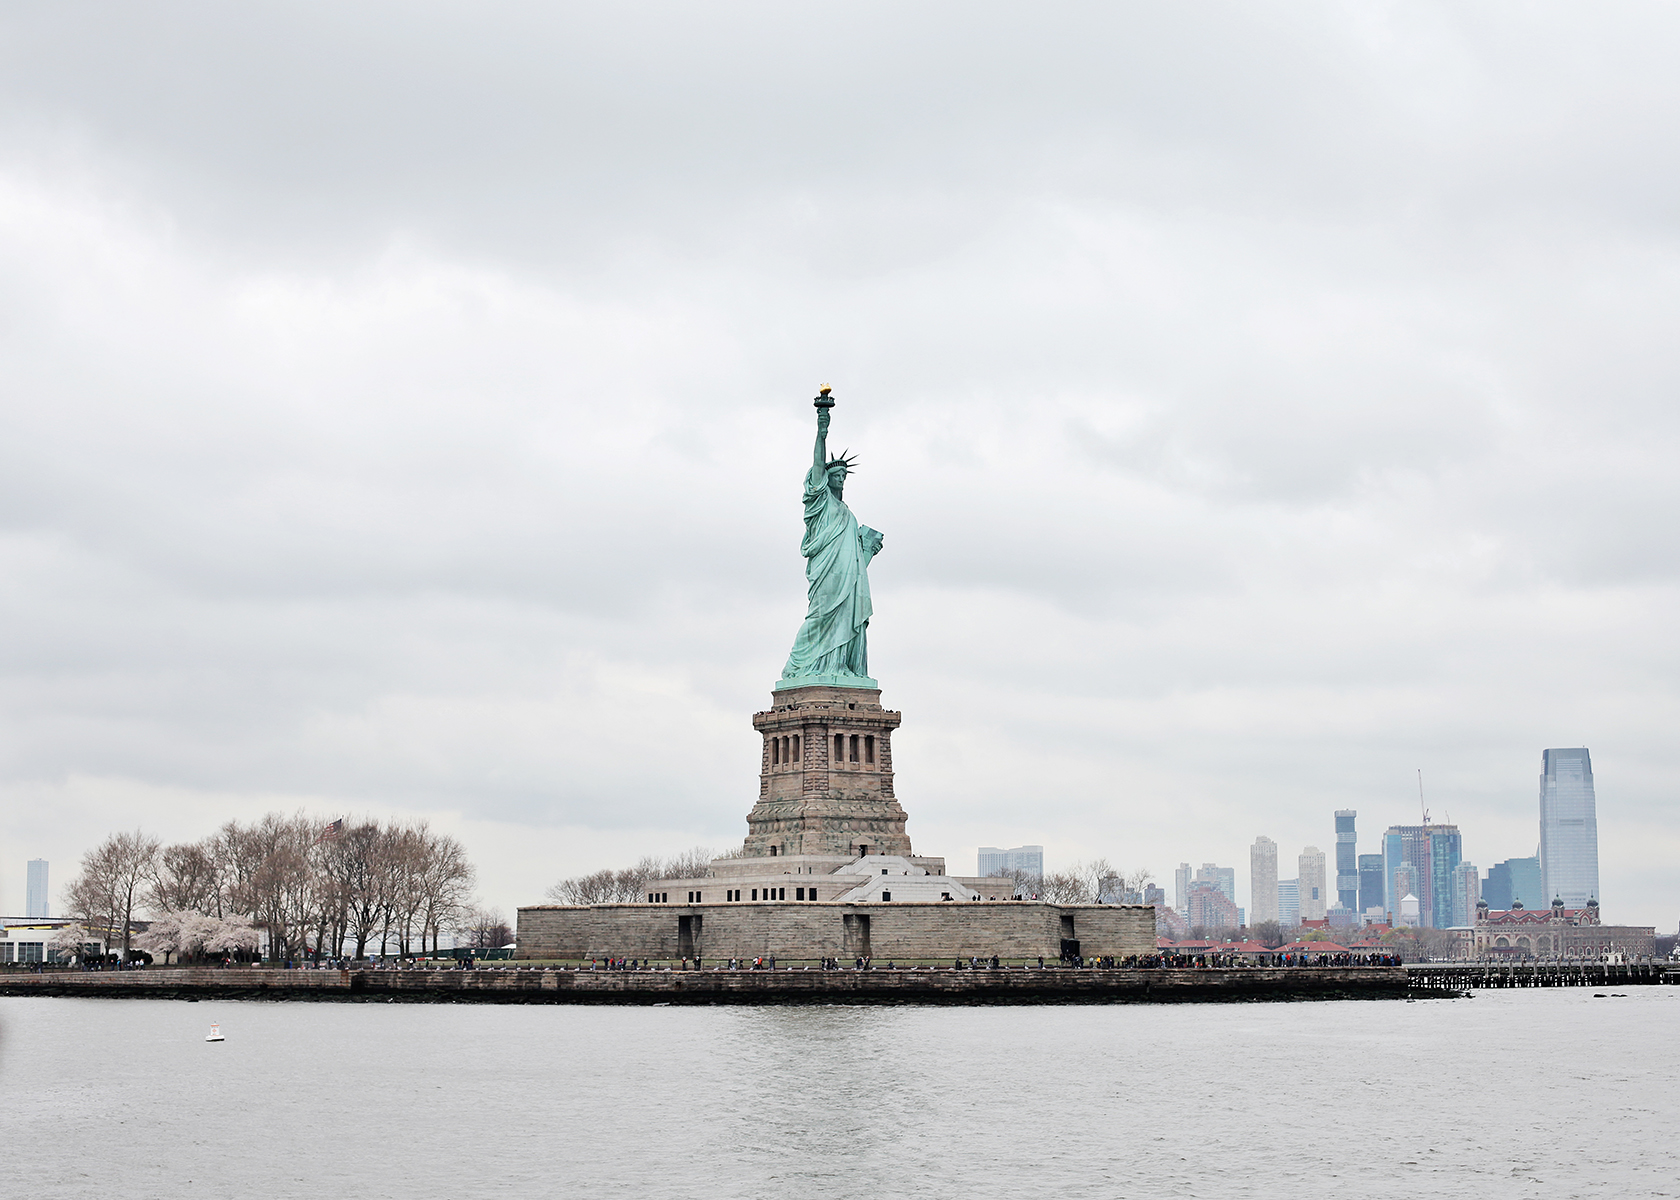 New York City - How to See the Statue of Liberty